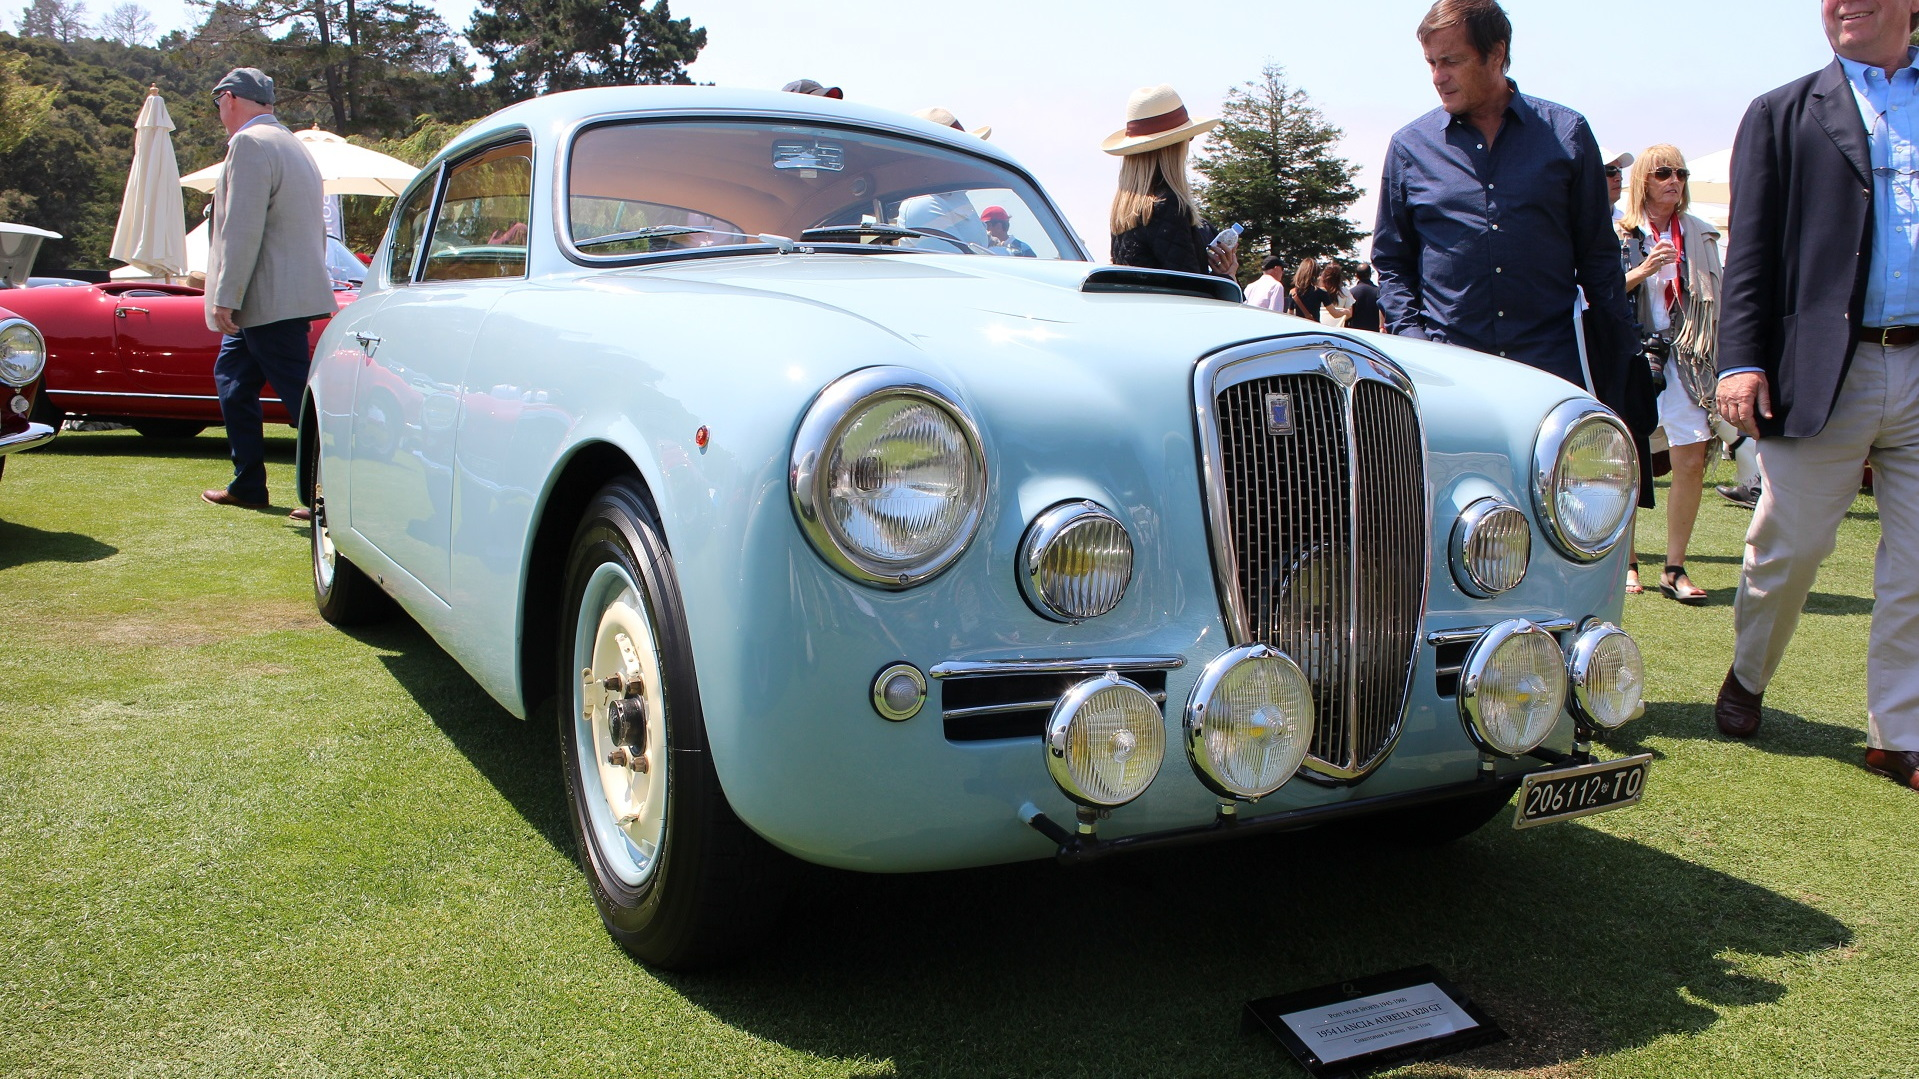 1954 Lancia Aurelia B20 GT, The Quail, 2017 Monterey Car Week